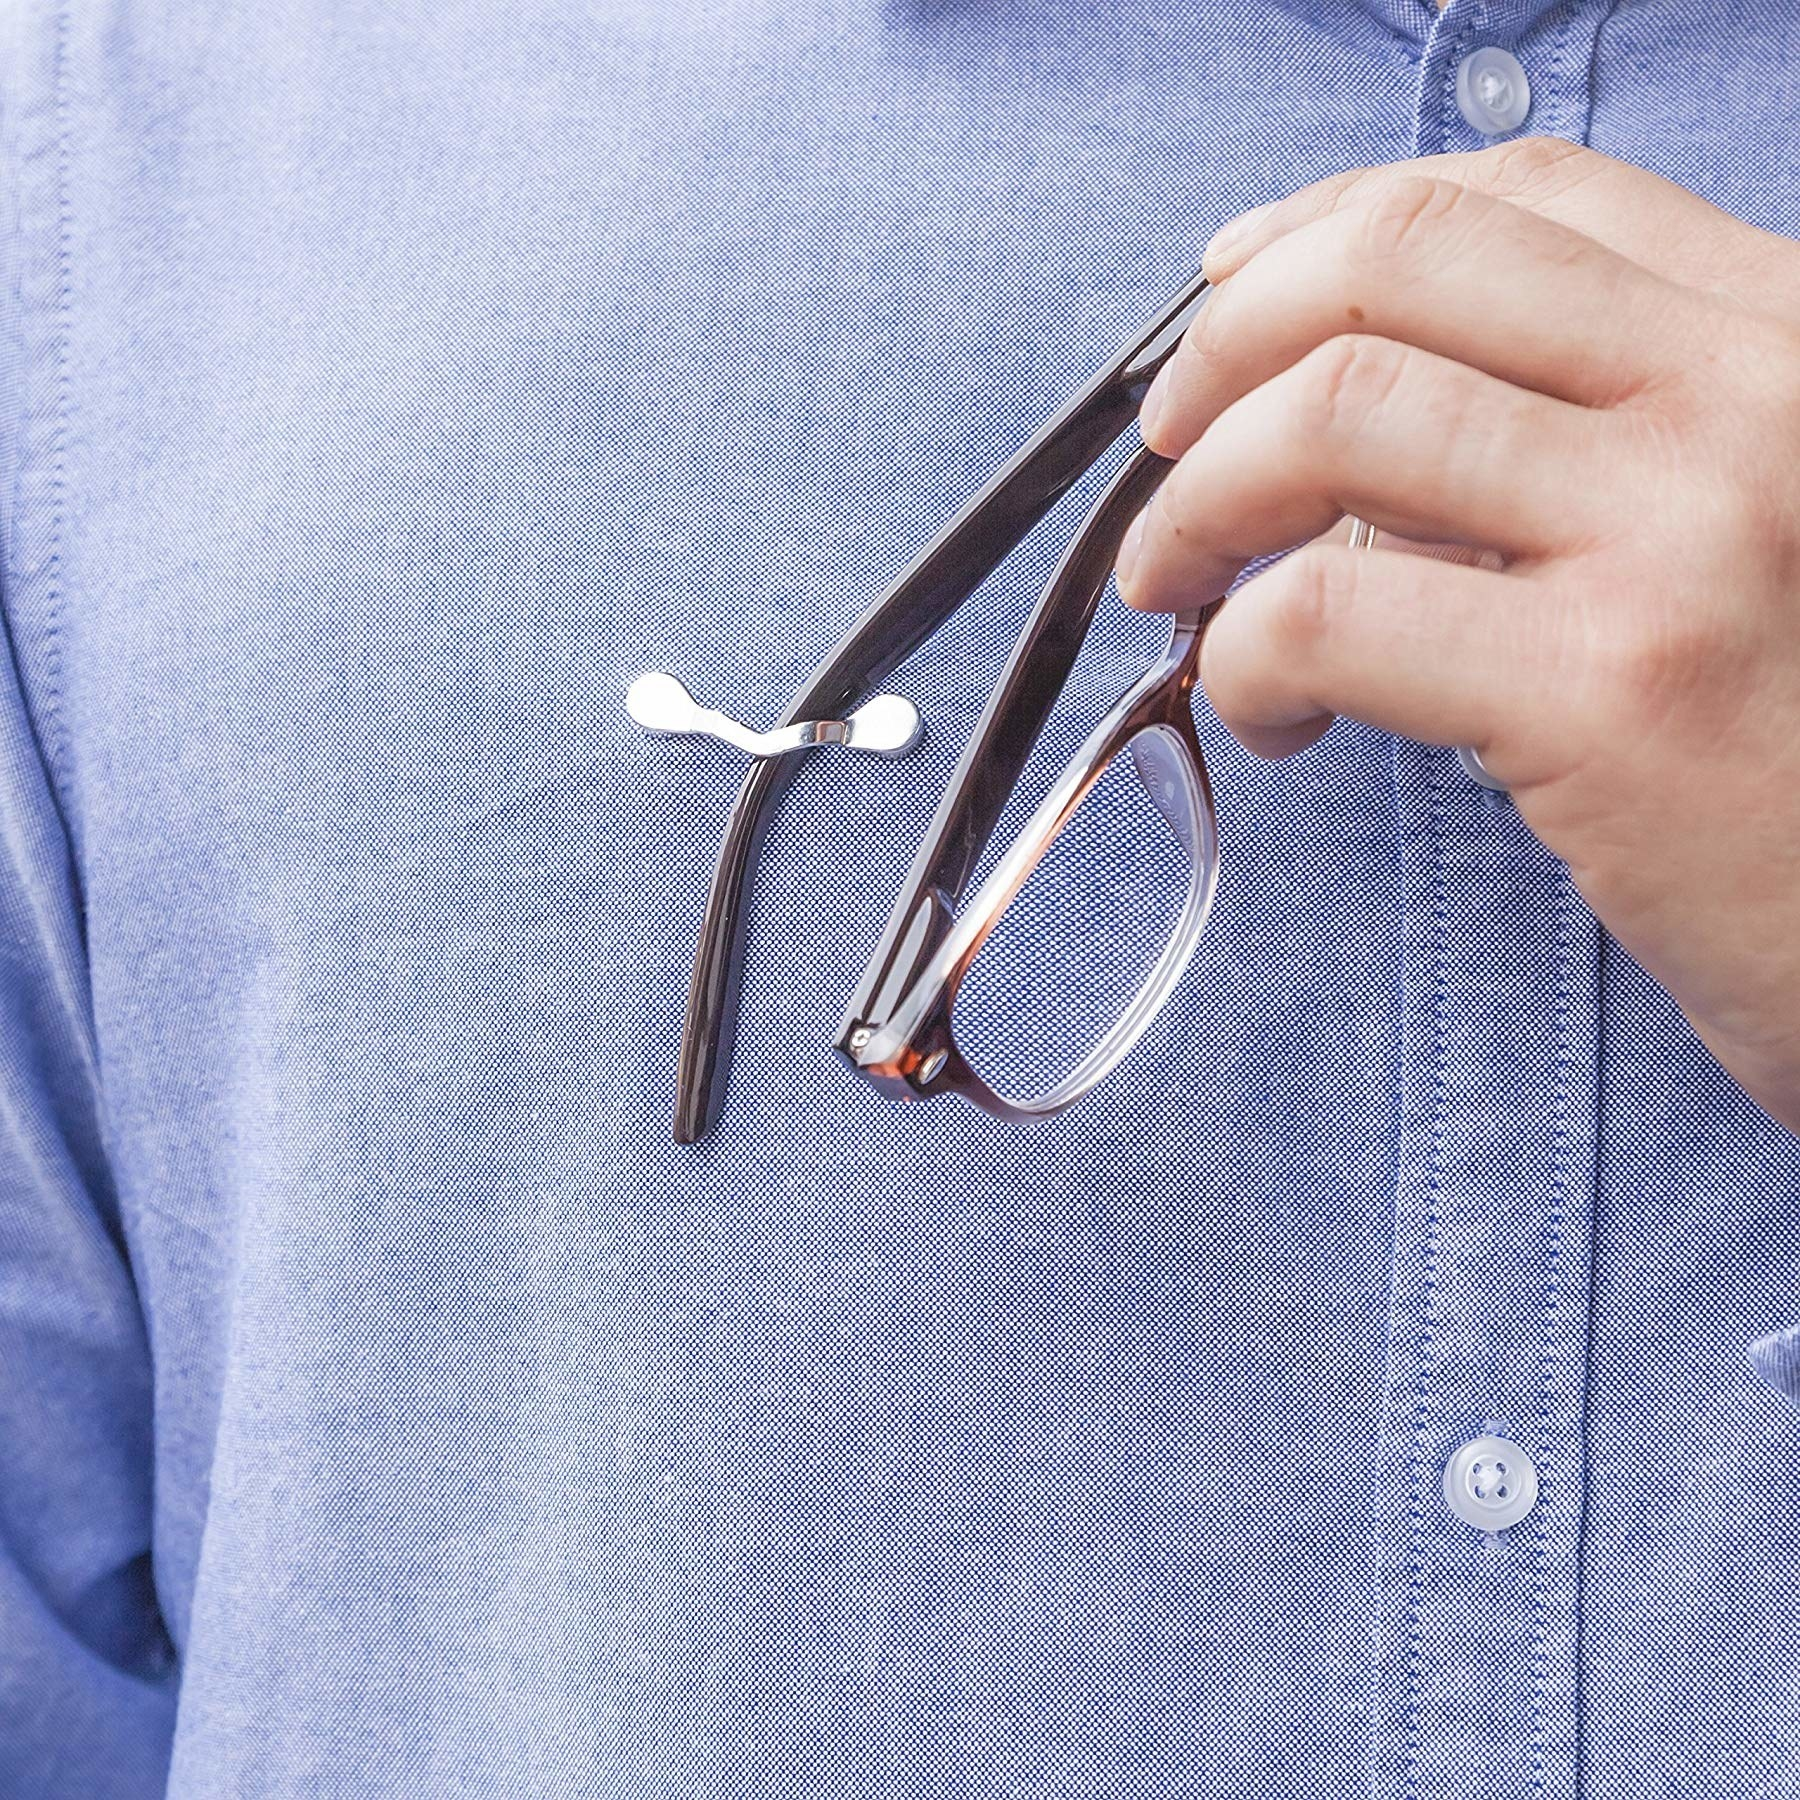 close up of a model placing their glasses into the readerest magnetic eyeglass holder on their shirt